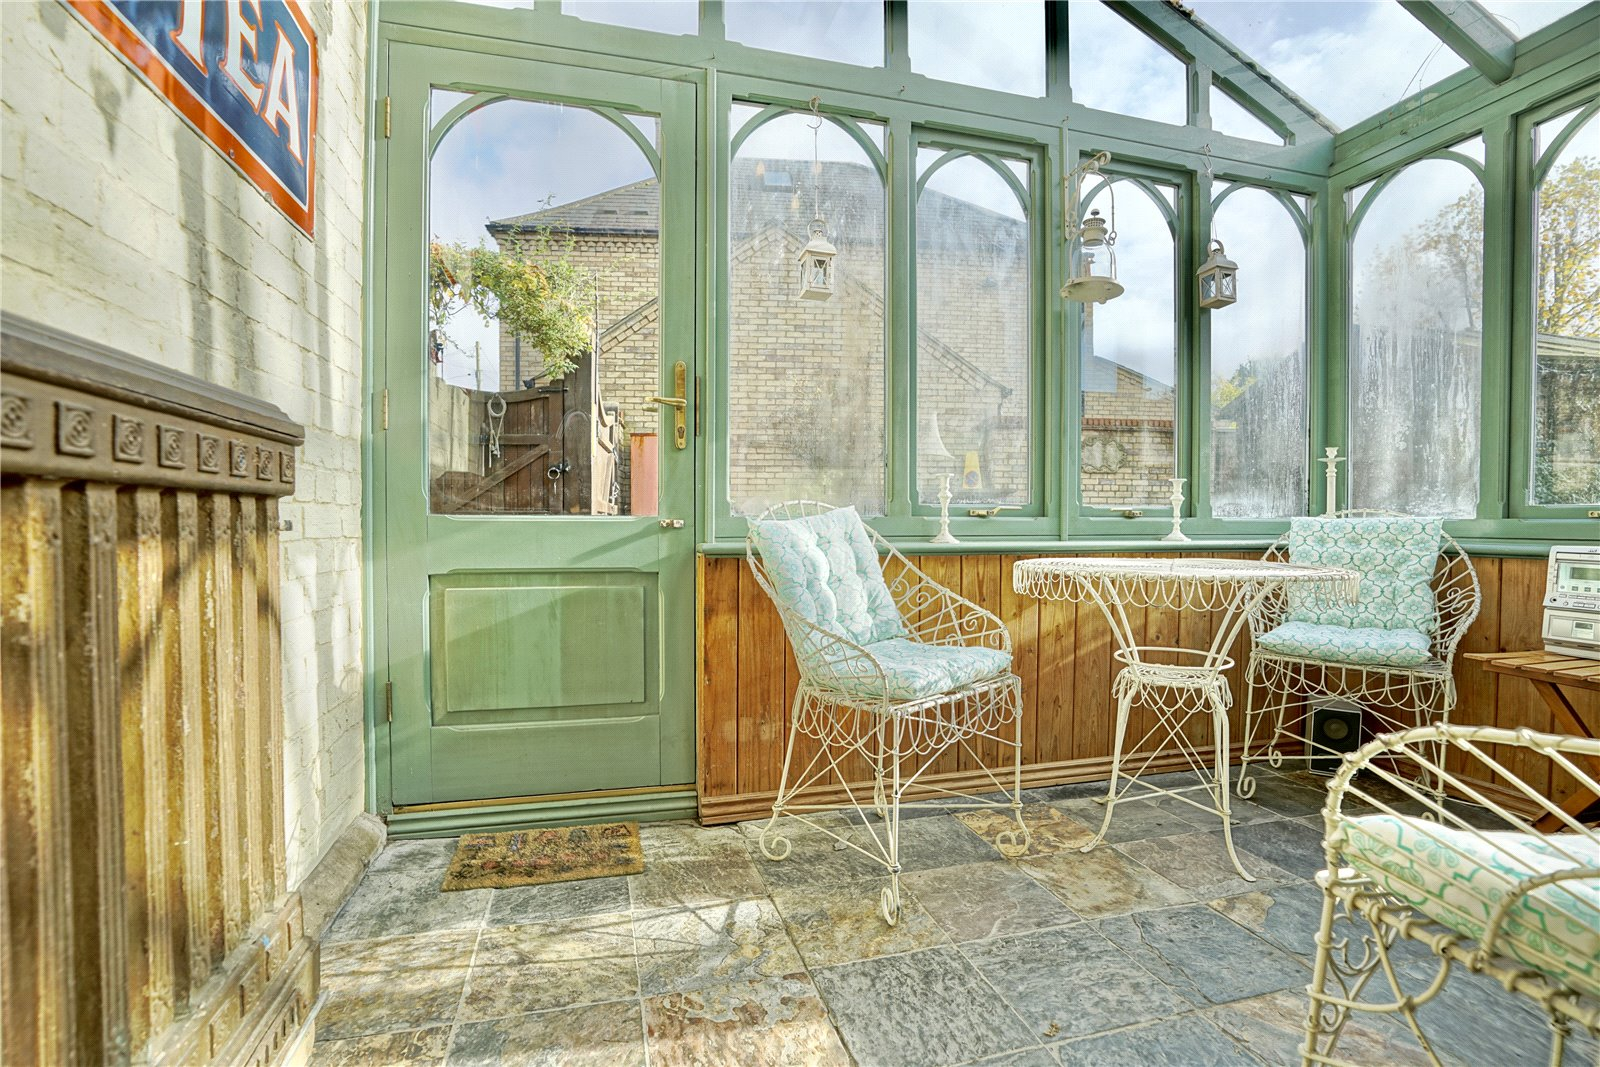 4 bed house for sale in Great Staughton  - Property Image 20